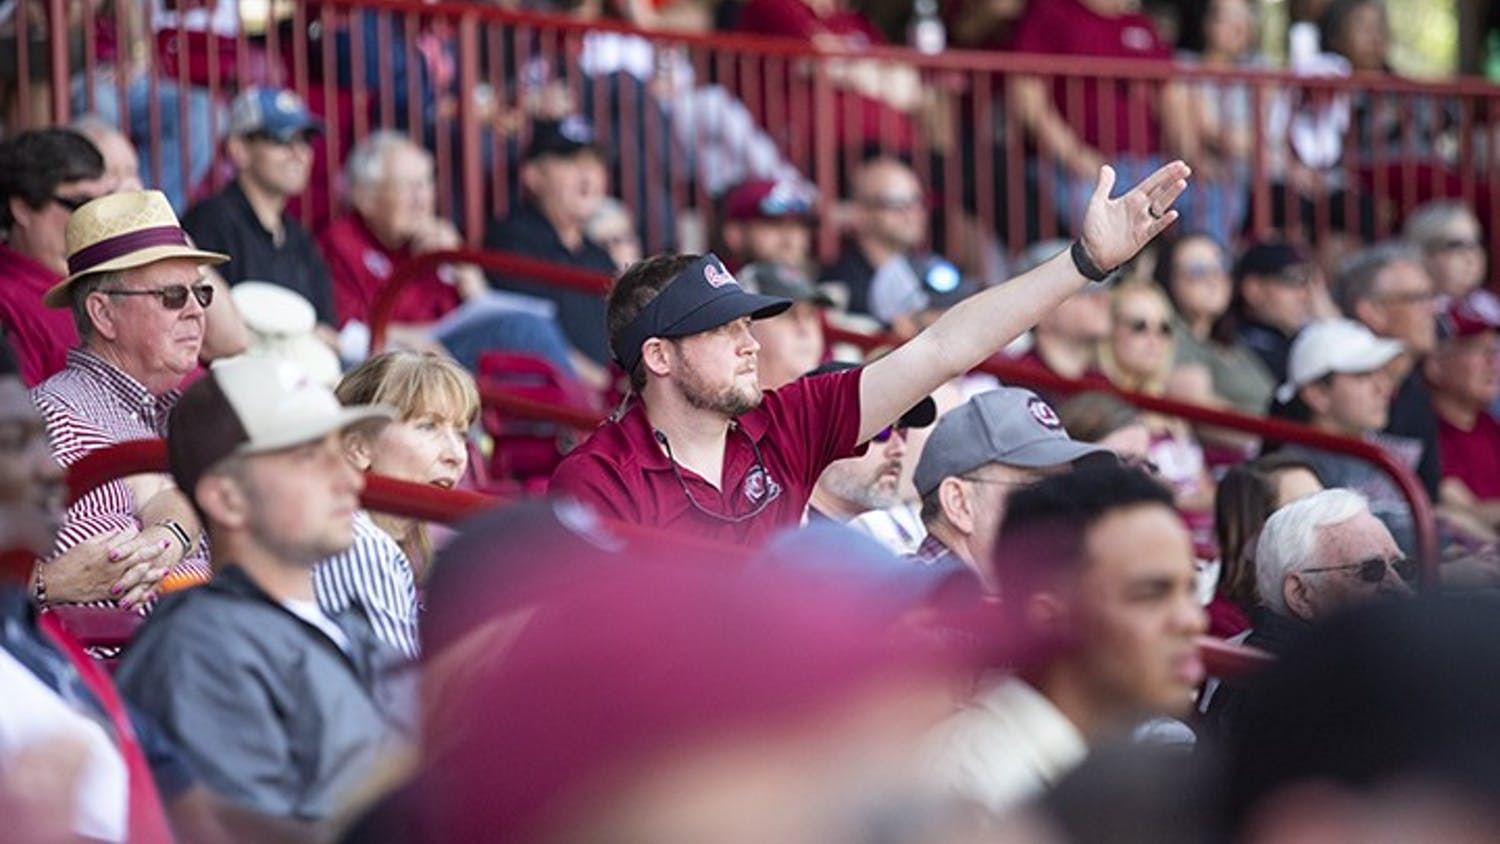 Upset with a call, a South Carolina fan throws their hands up in frustration during the second game against Auburn at Founders Park in 2019.